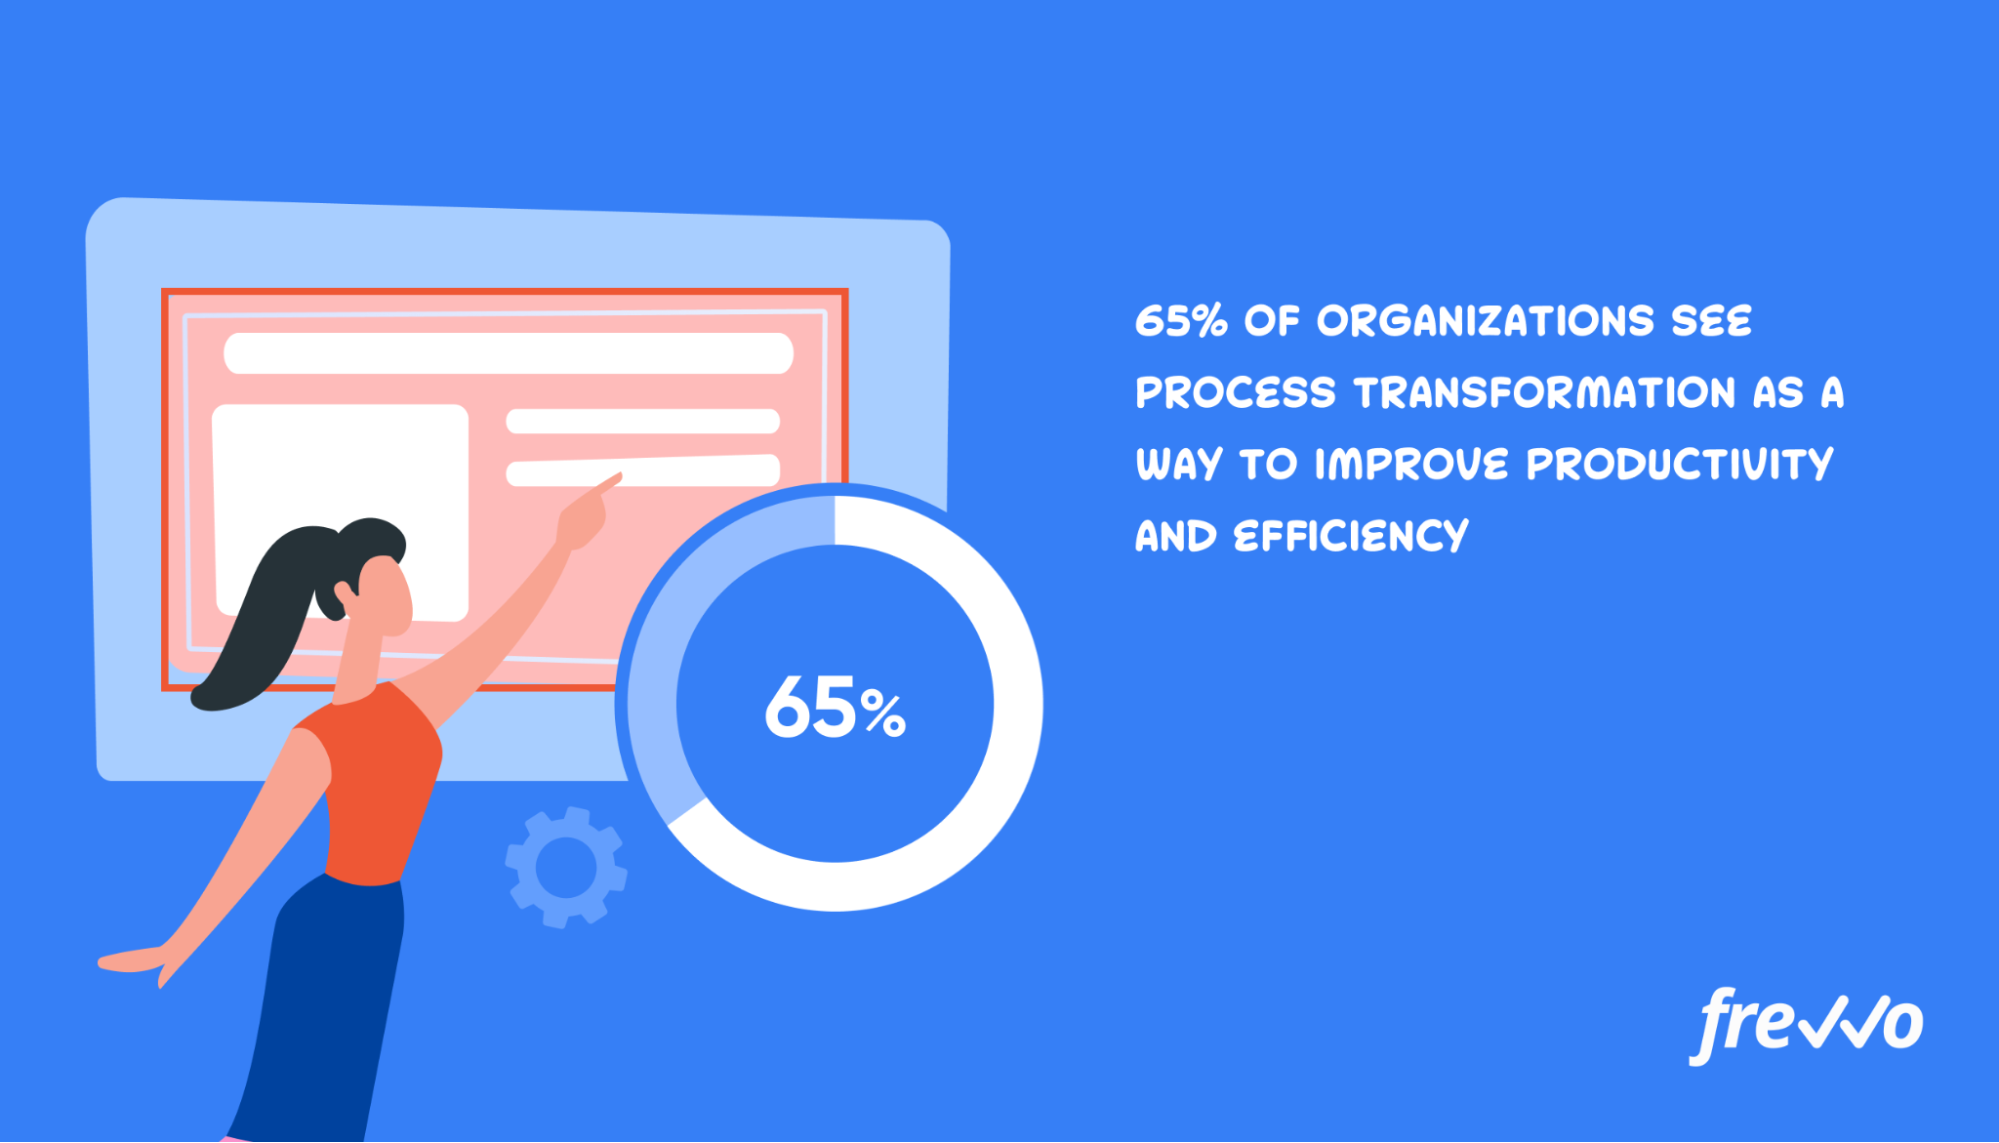 statistics about process transformation and productivity